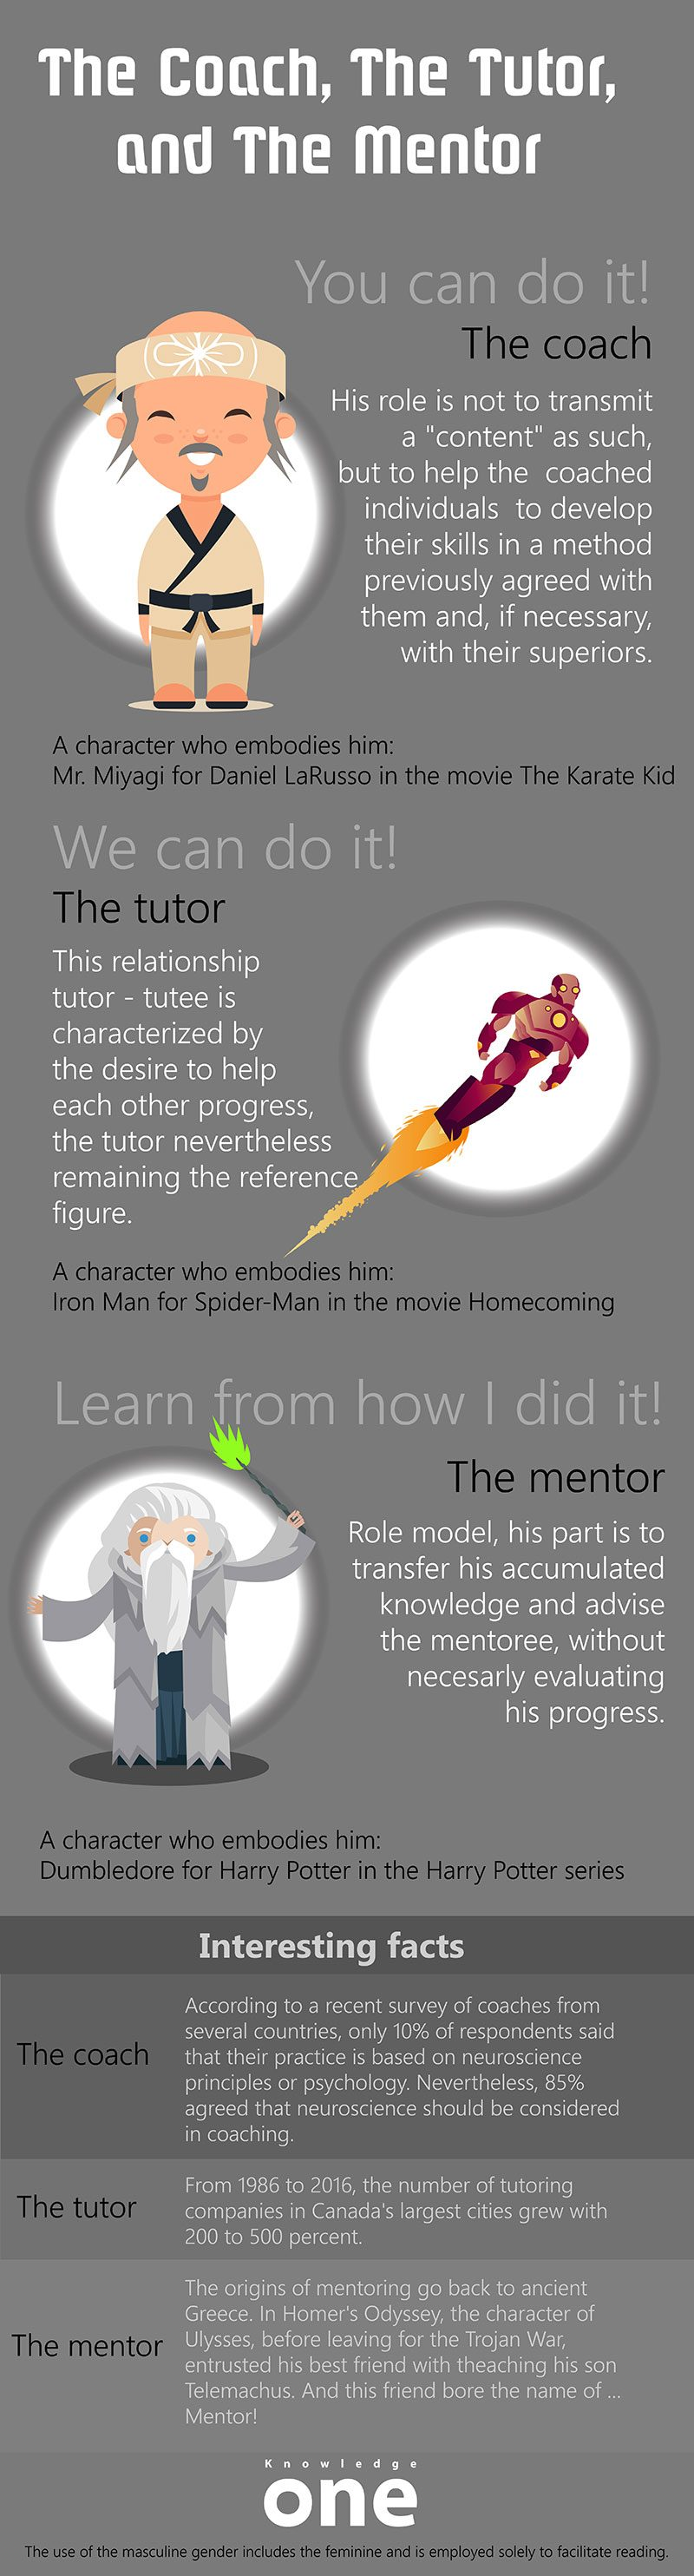 Mentor Coach Tutor infographic